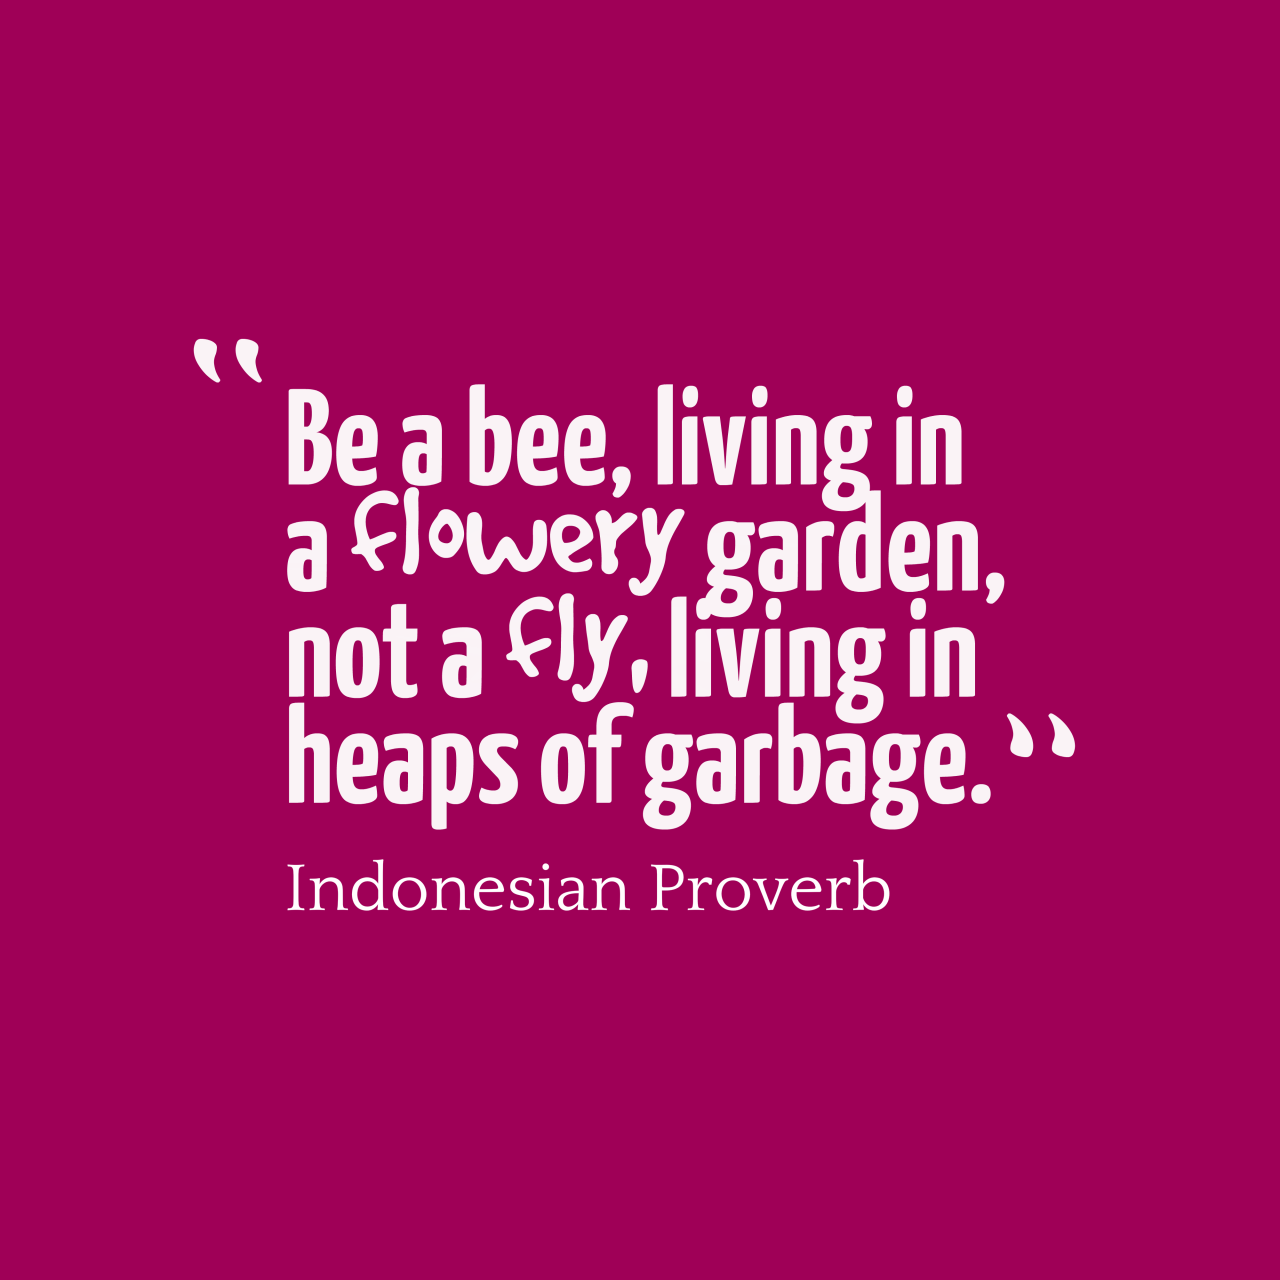 Indonesian Proverb About Life